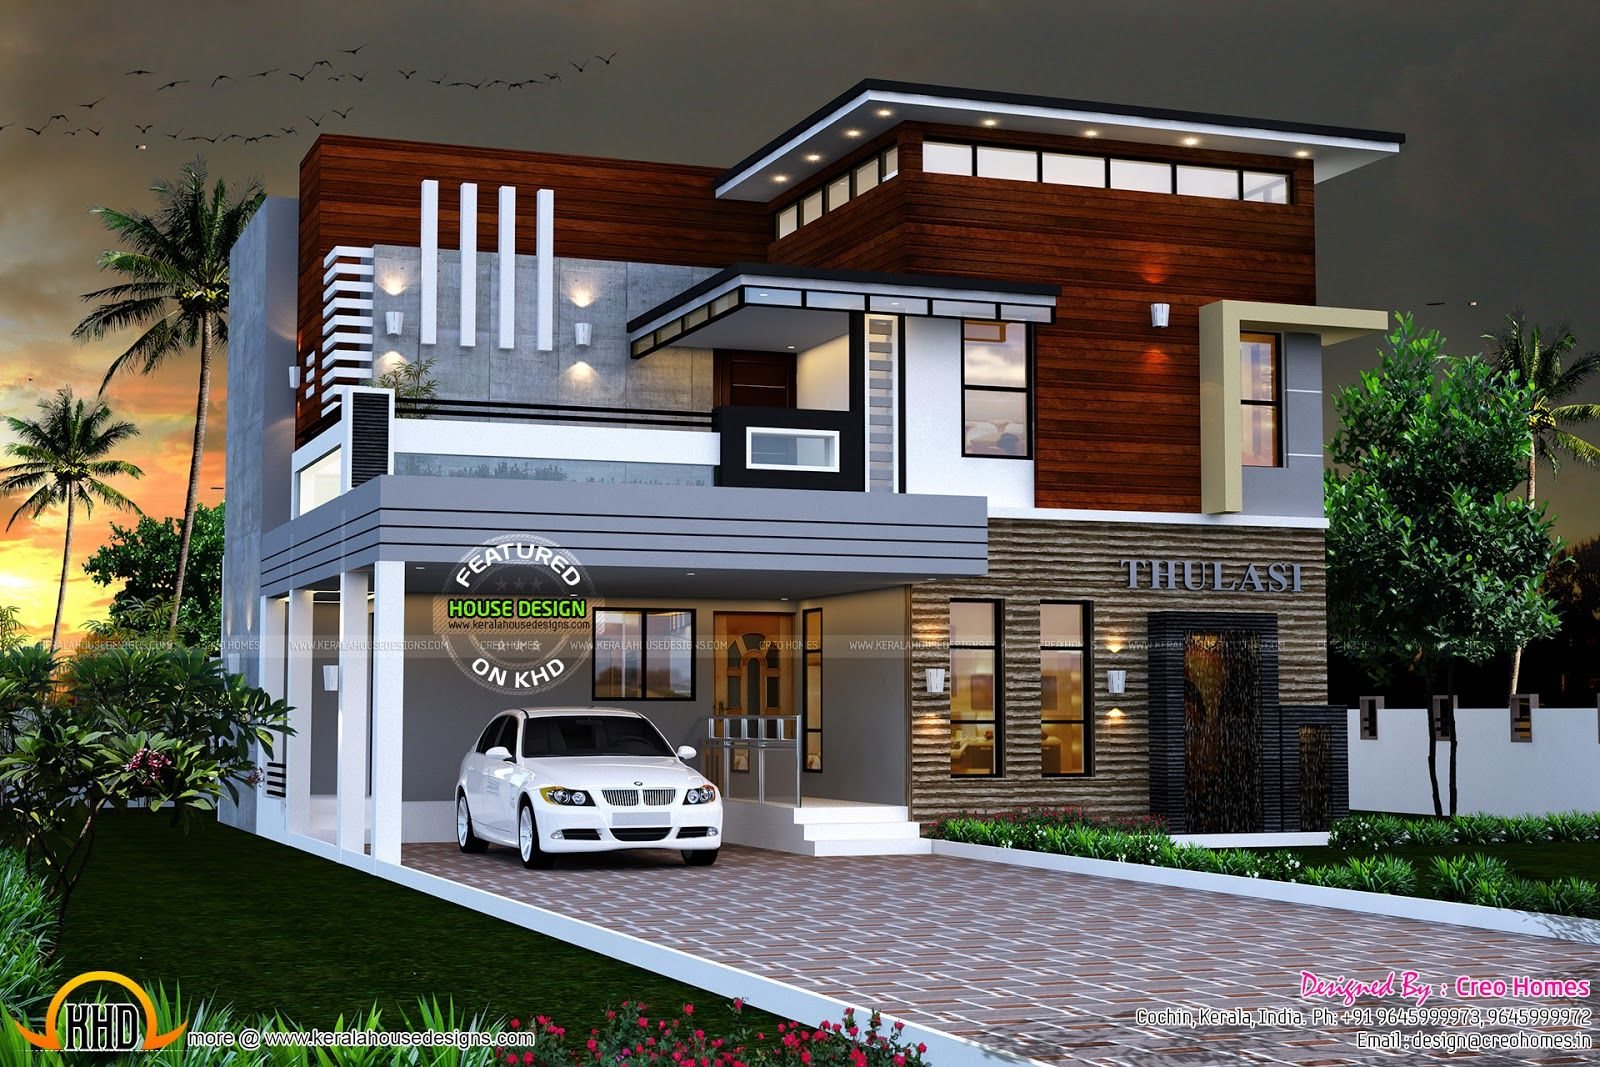 Eterior design modern small house architecture building Contemporary home builder